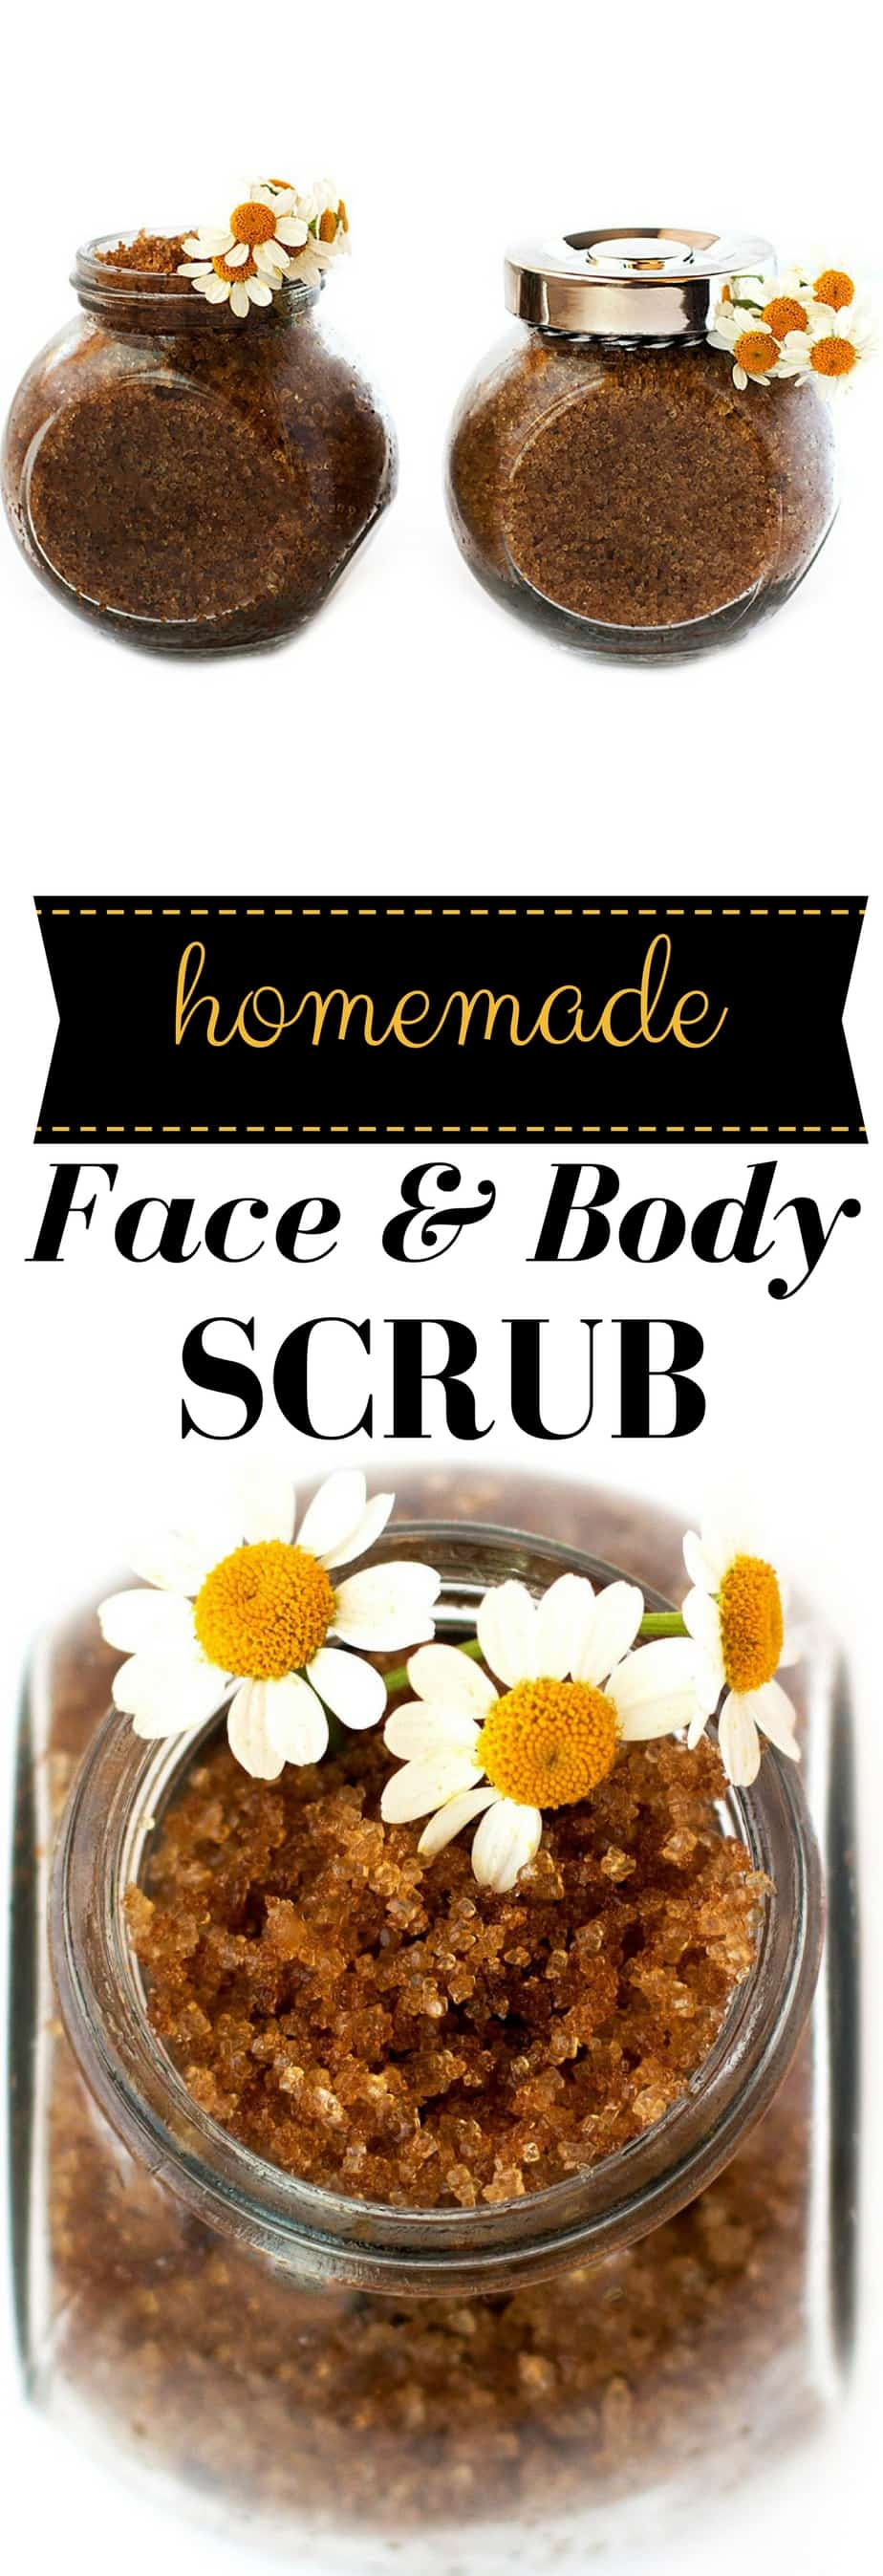 homemade facial scrub tutorial. This facial and body scrub contains all natural ingredients to help rejuvenate and exfoliate skin